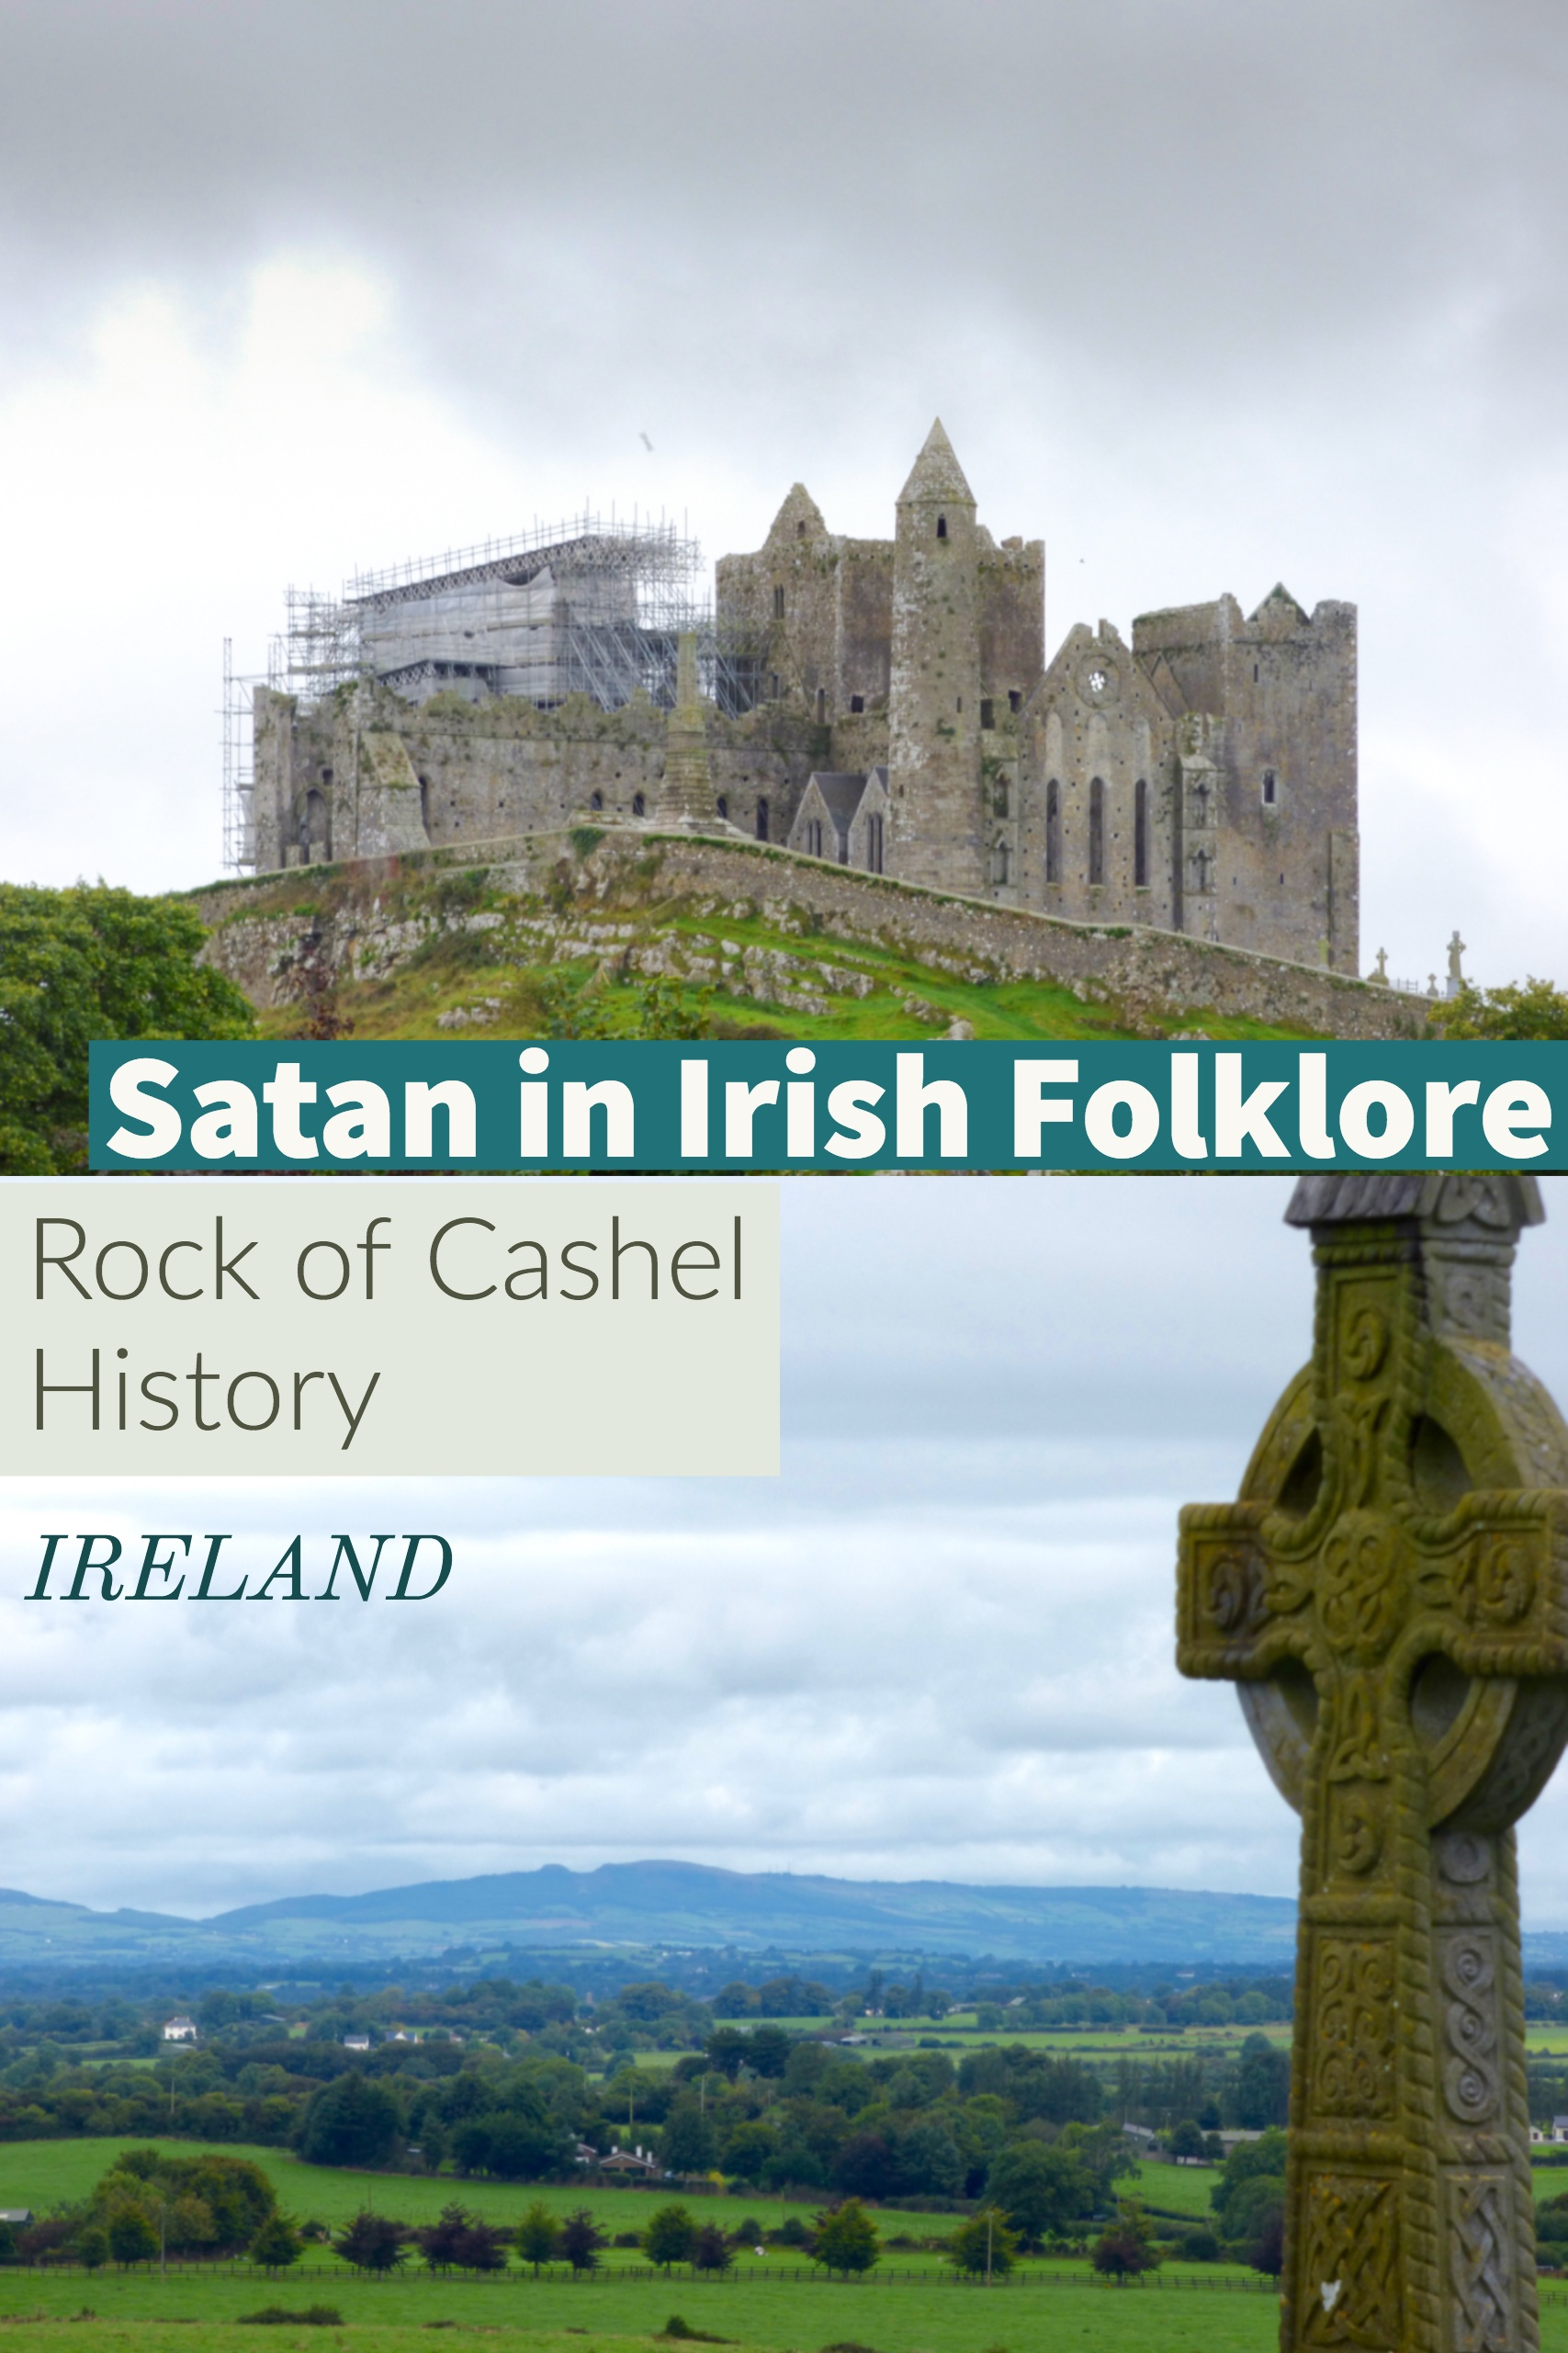 The Rock of Cashel's history goes back to the 12th century with stories of kingdoms, battles and Satan himself. Read up on the rich history of the Rock of Cashel, folklore and fact, to inspire your visit.